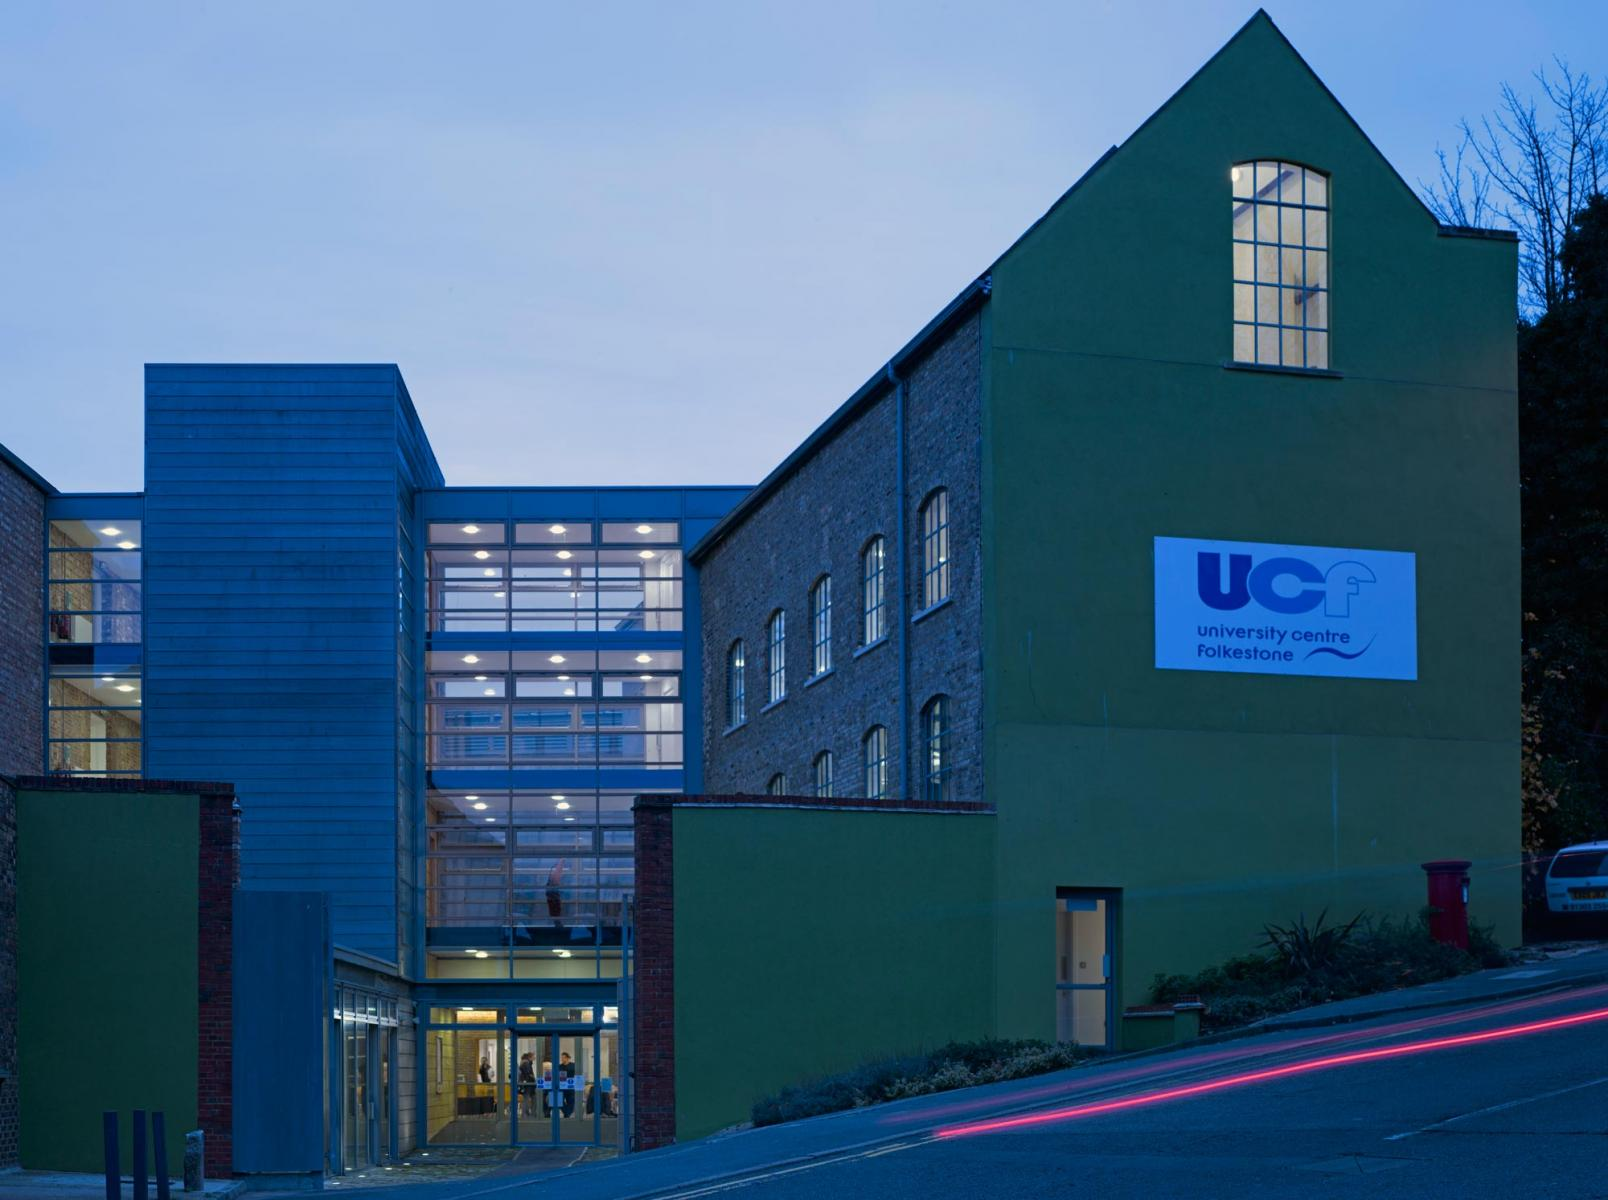 University Centre, Folkestone - Exterior at Dusk